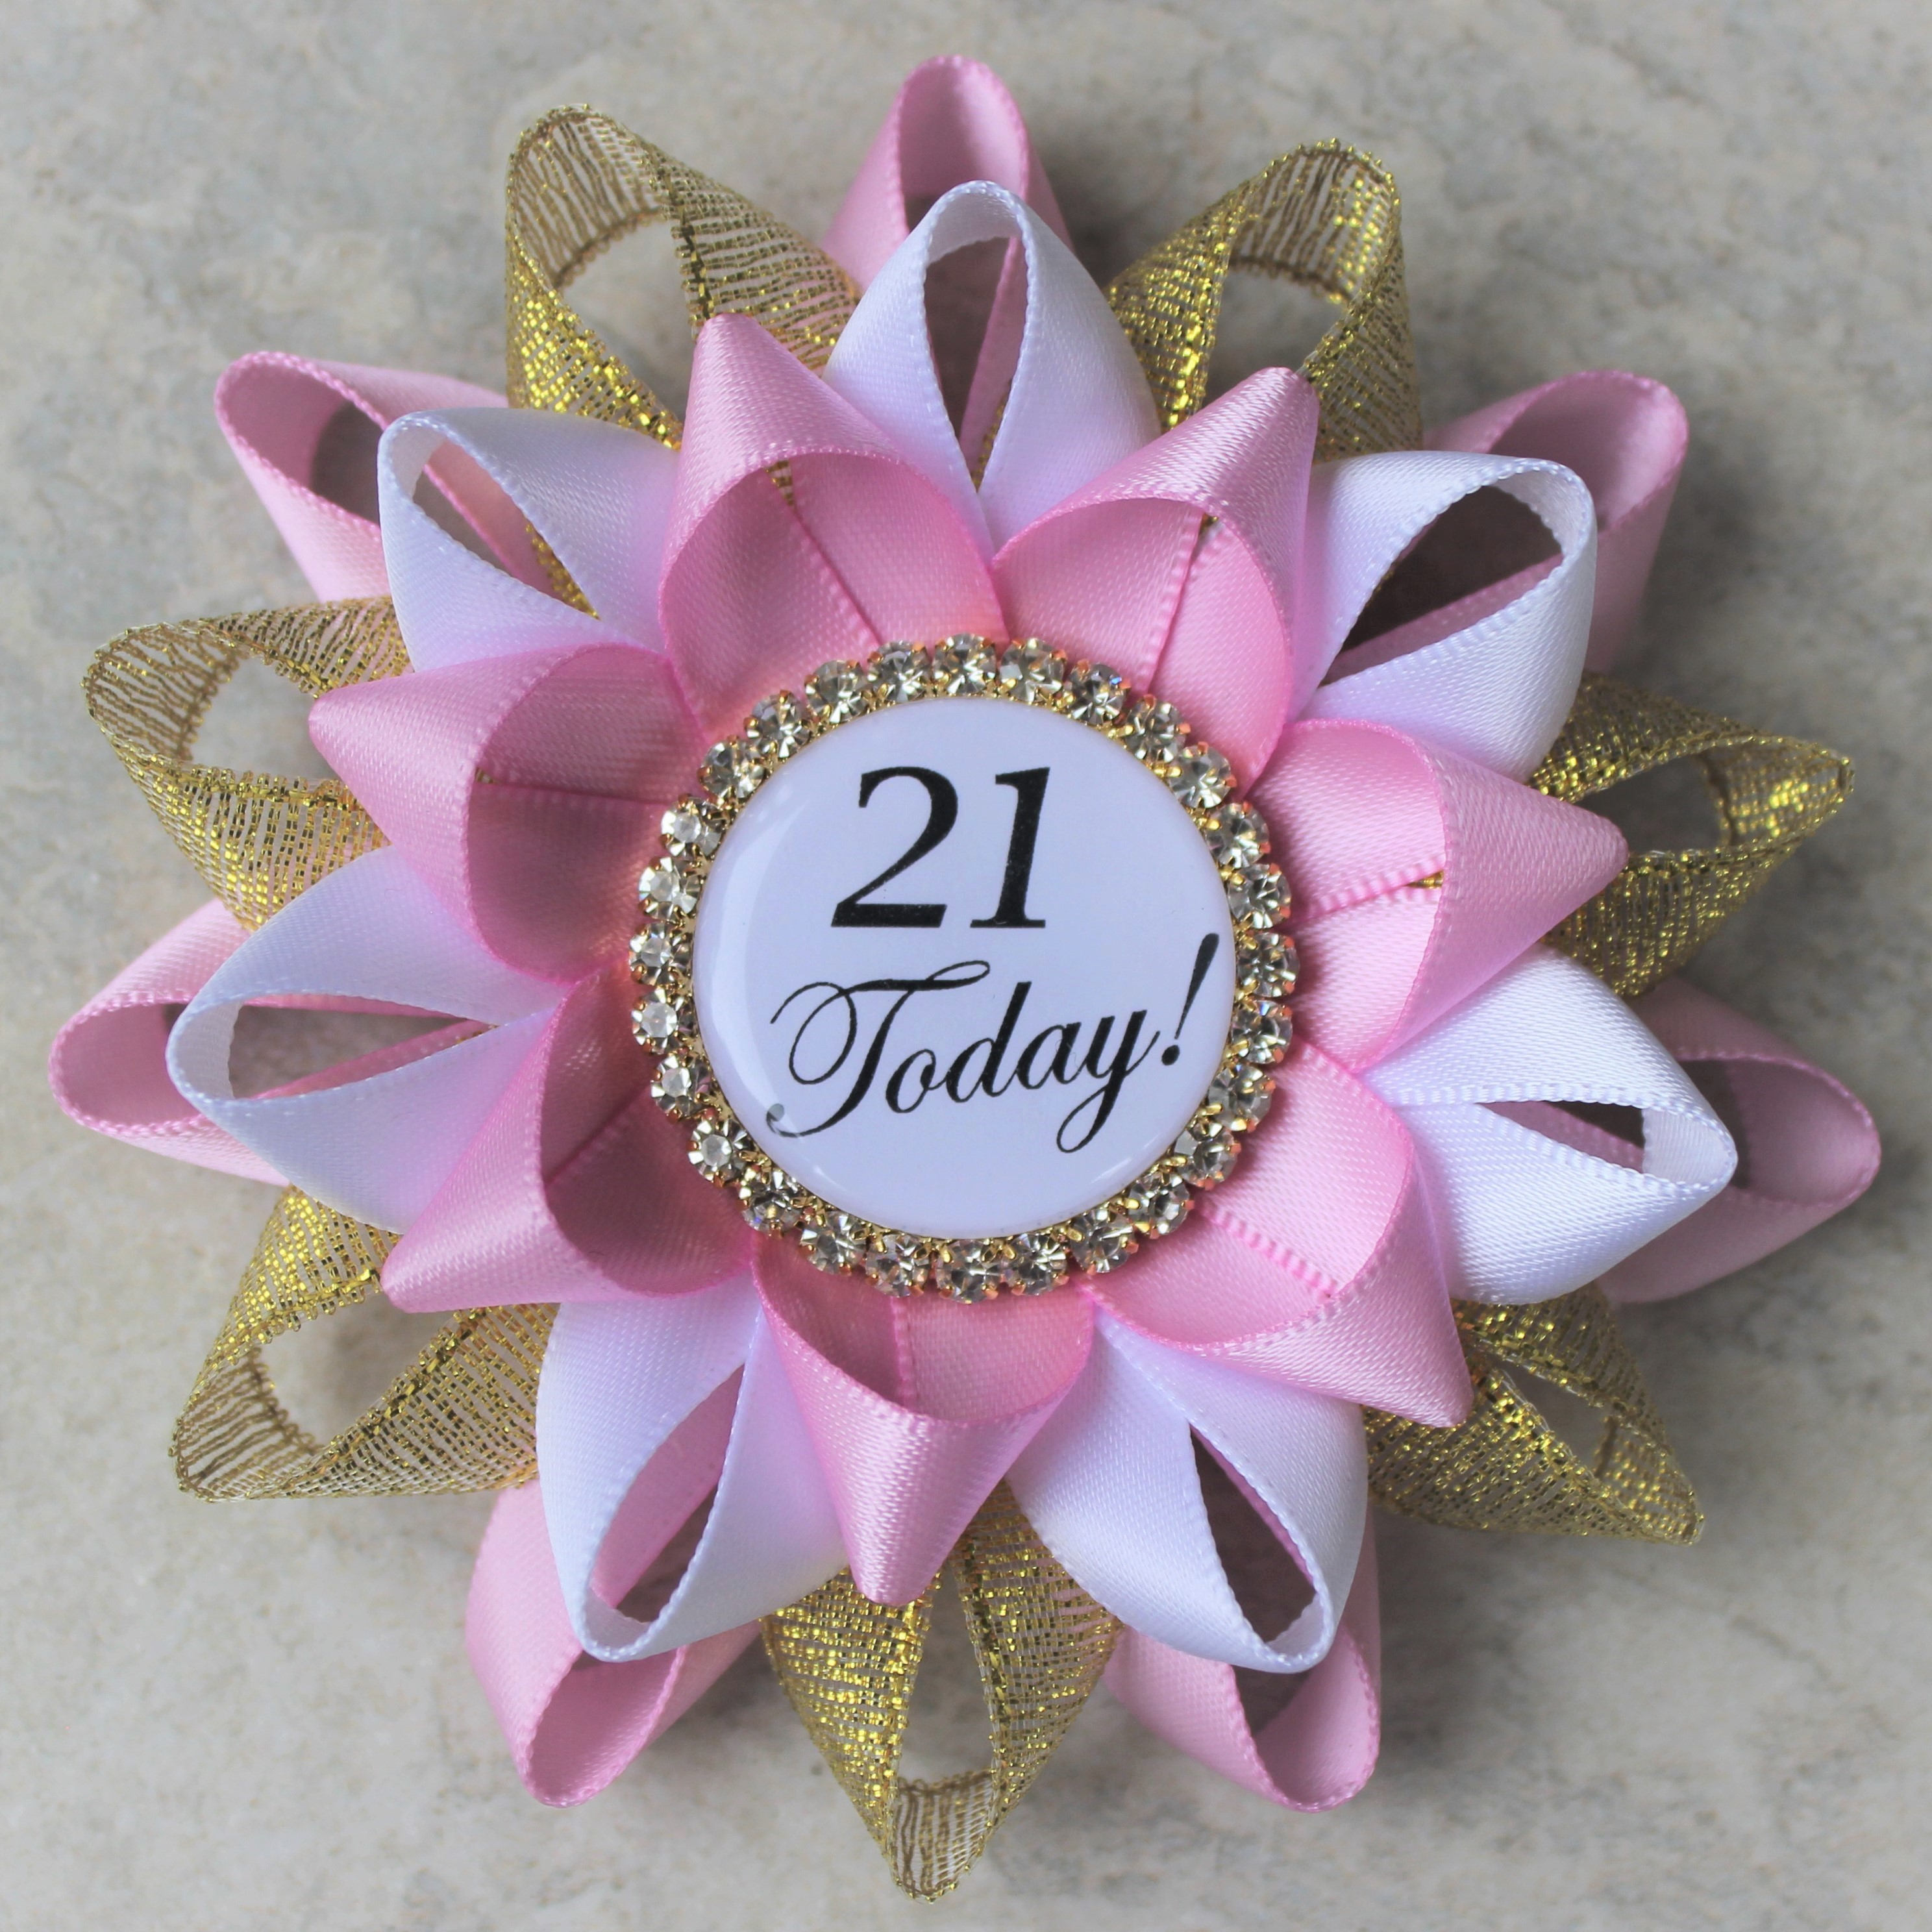 21st birthday pin 21st birthday party decorations gift for her